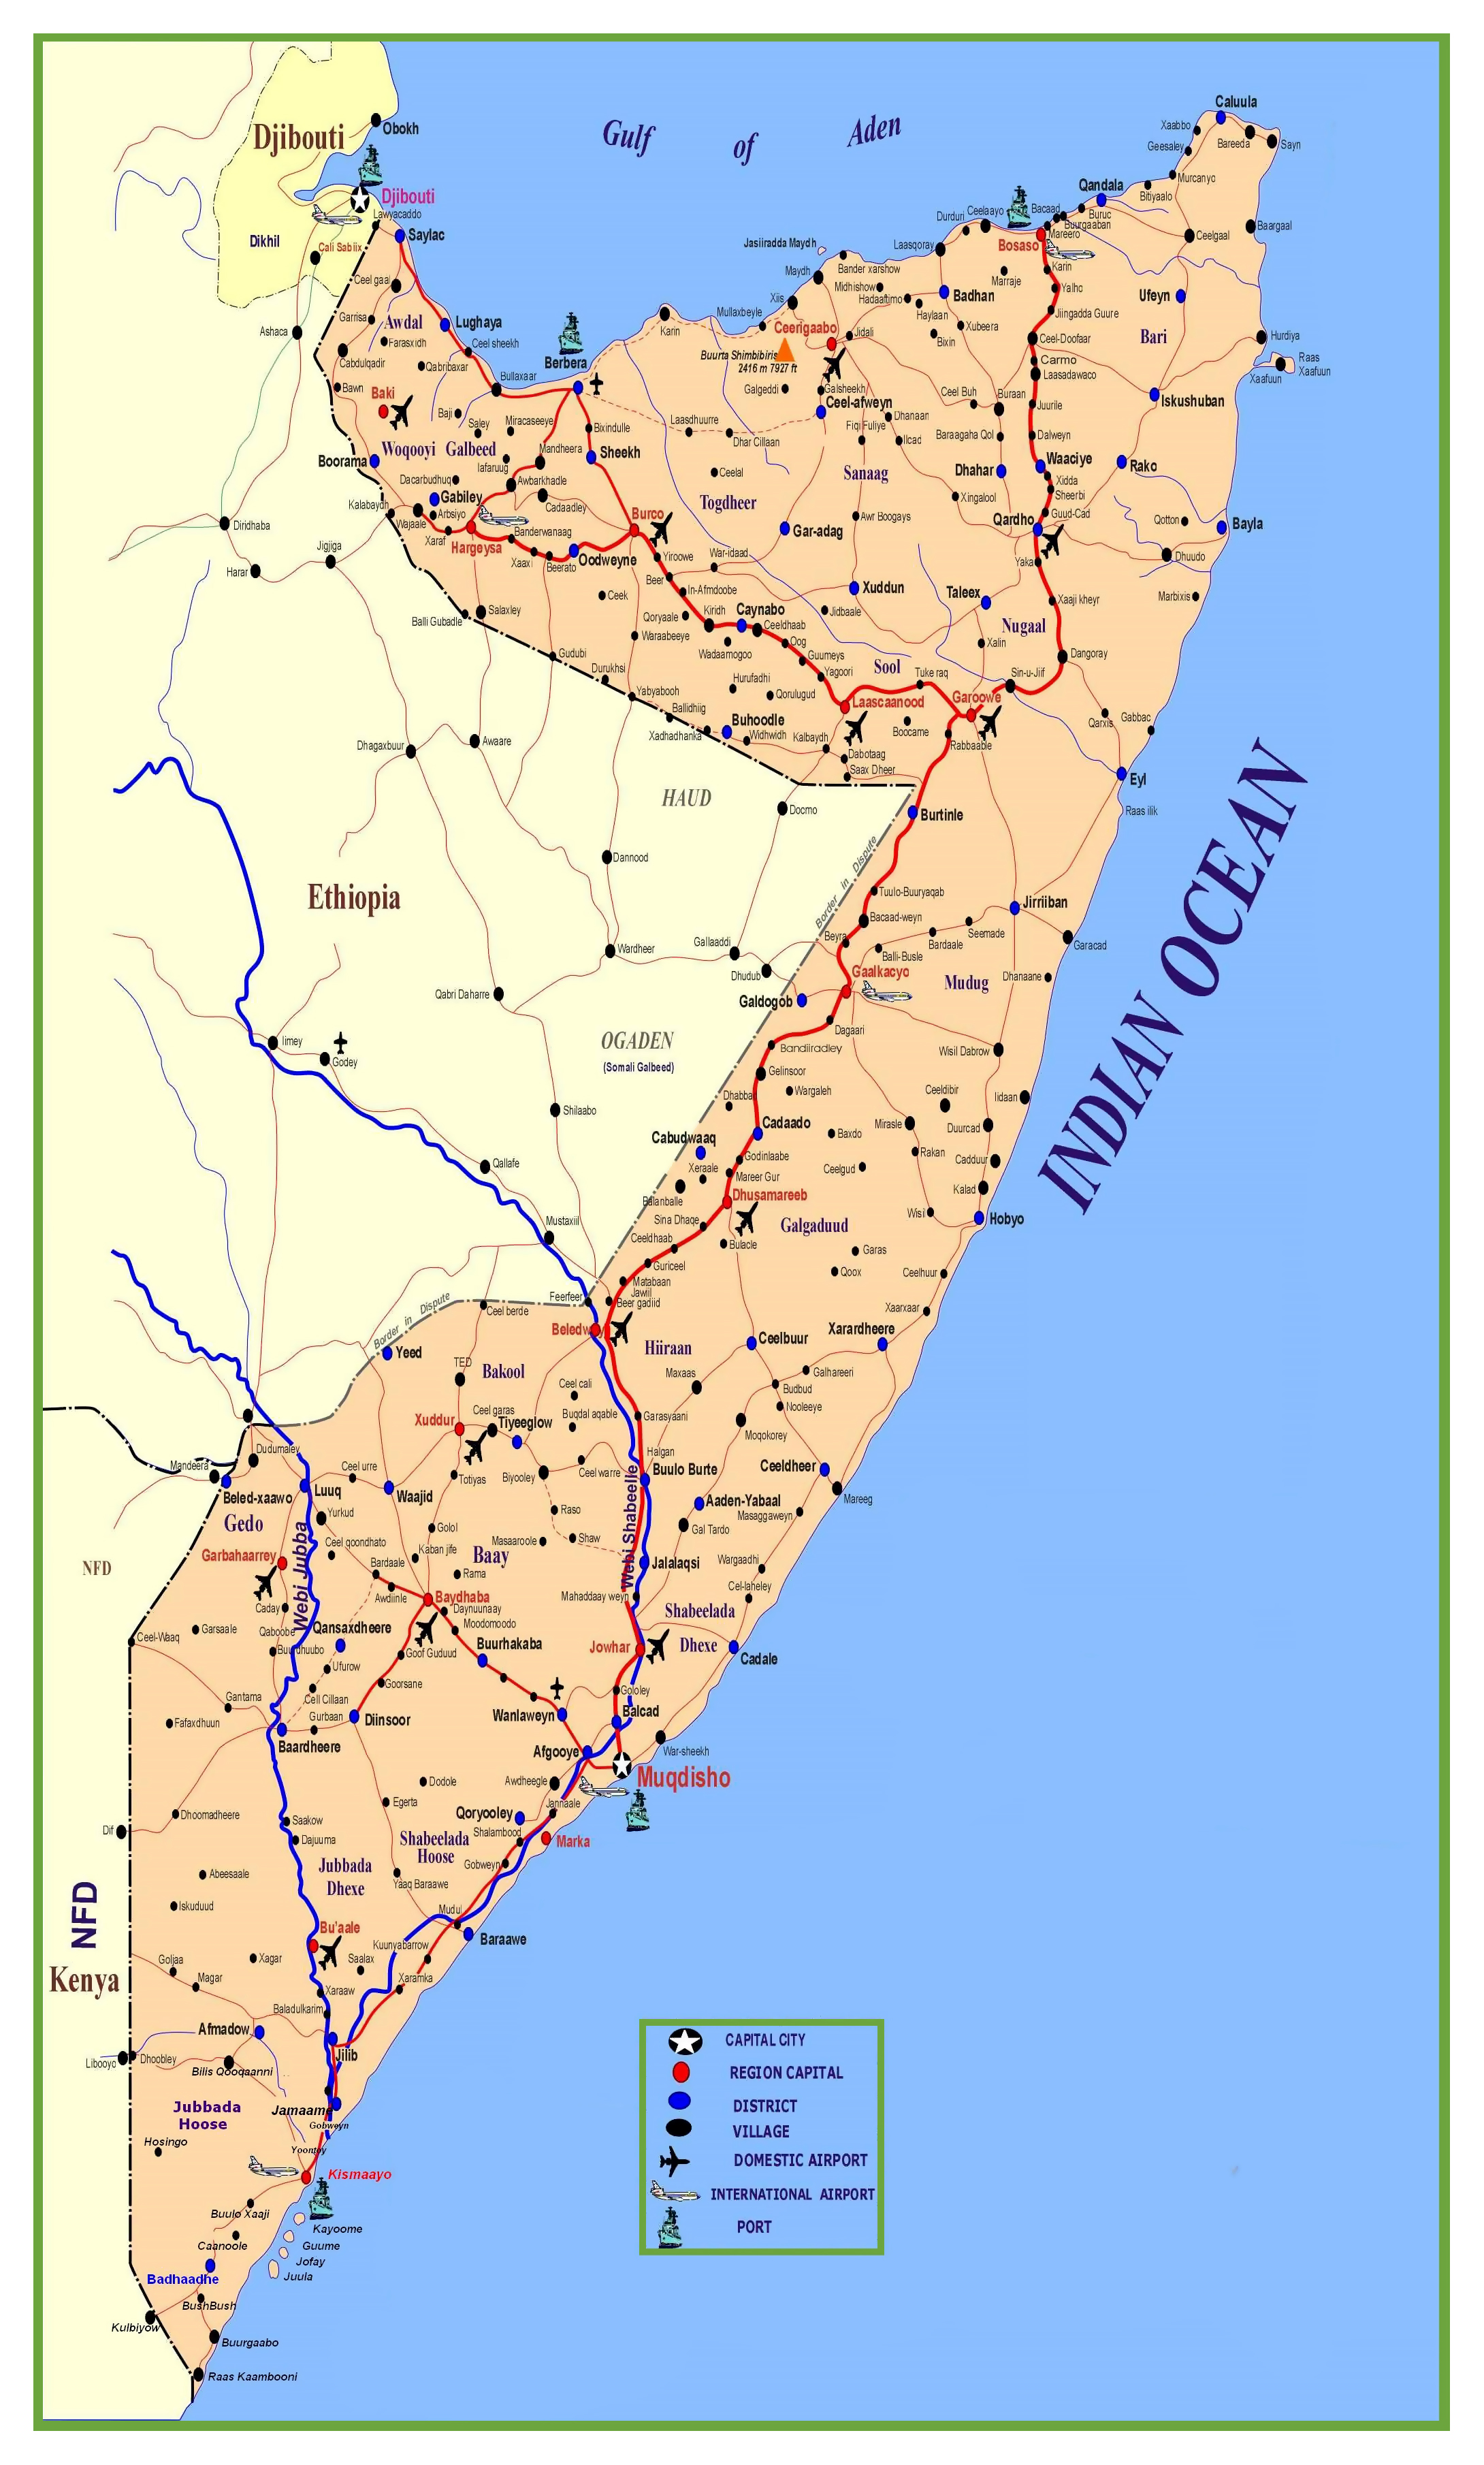 Large detailed map of Somalia with roads, cities, villages ... on map of senegal africa, map of rwanda africa, map of morocco africa, map of somaliland africa, map of tanzania africa, map of africa with countries, map of gabon africa, map of madagascar africa, map of zimbabwe africa, map of kenya africa, map of ghana africa, map of nigeria africa, map of south sudan africa, map of mauritius africa, physical map of africa, map of eritrea africa, map of mali africa, map of ethiopia africa, mogadishu africa, map of central african republic africa,